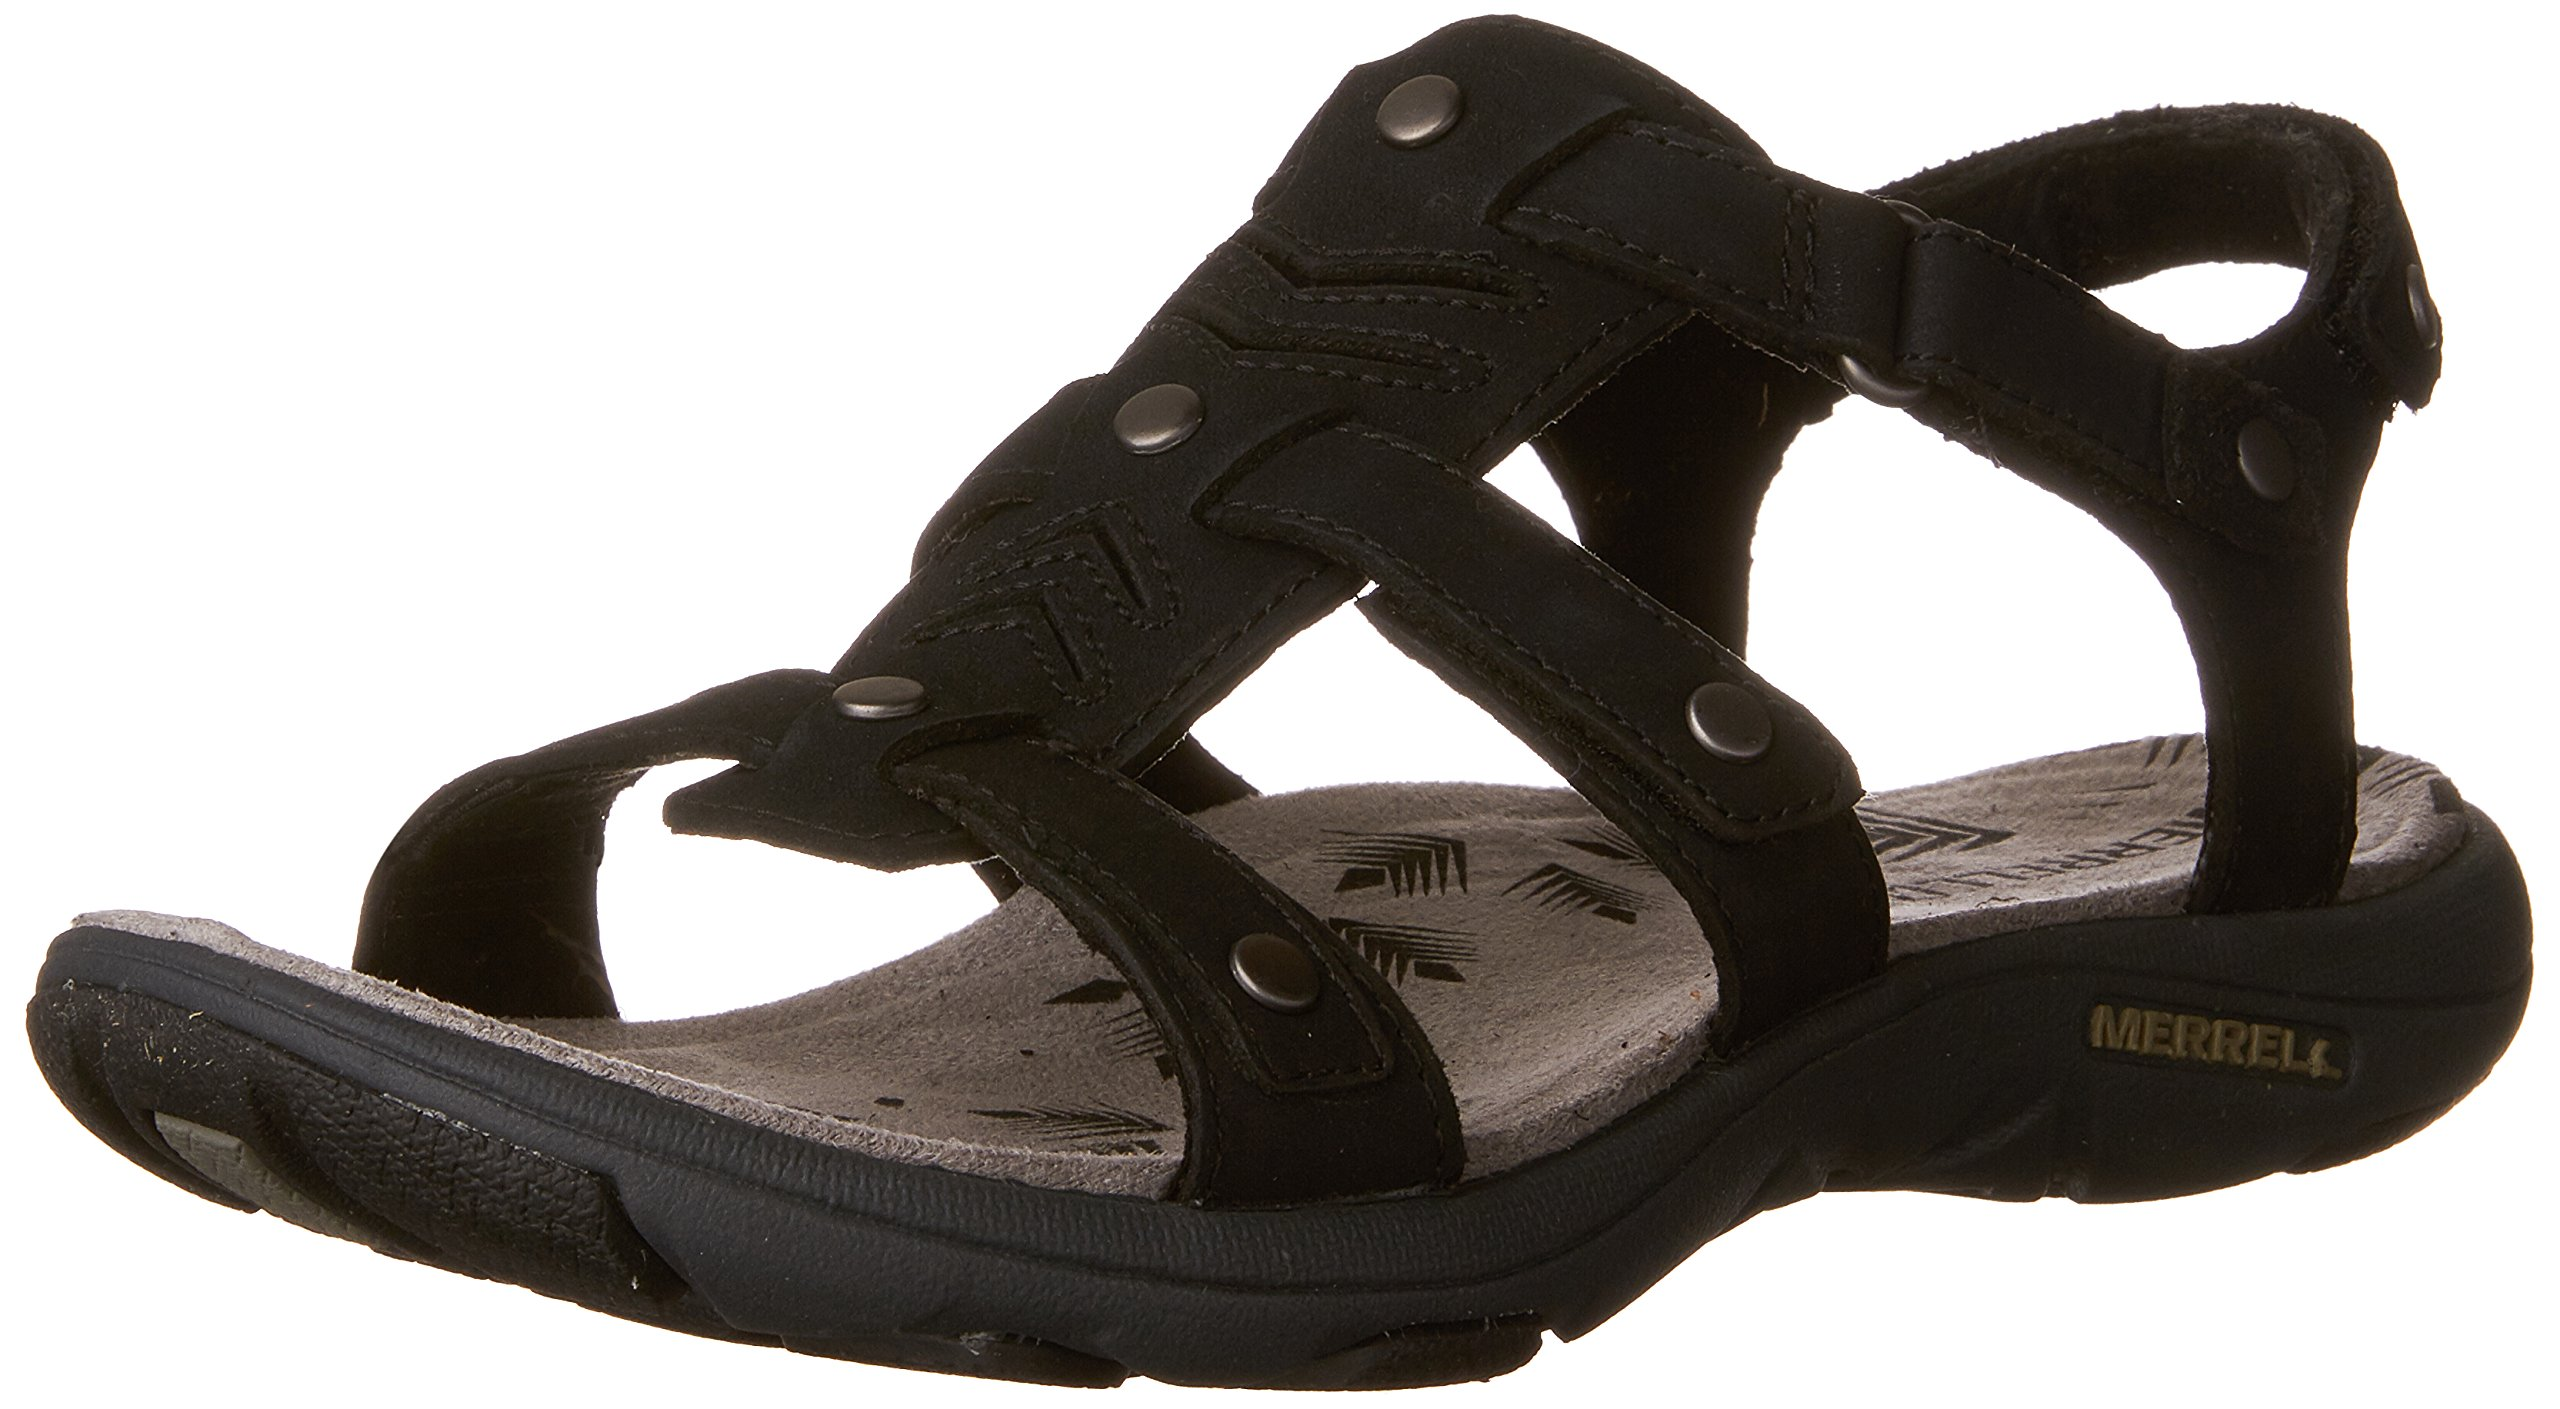 Merrell Women's Adhera Three Athletic Sandal, Black, 6 M US